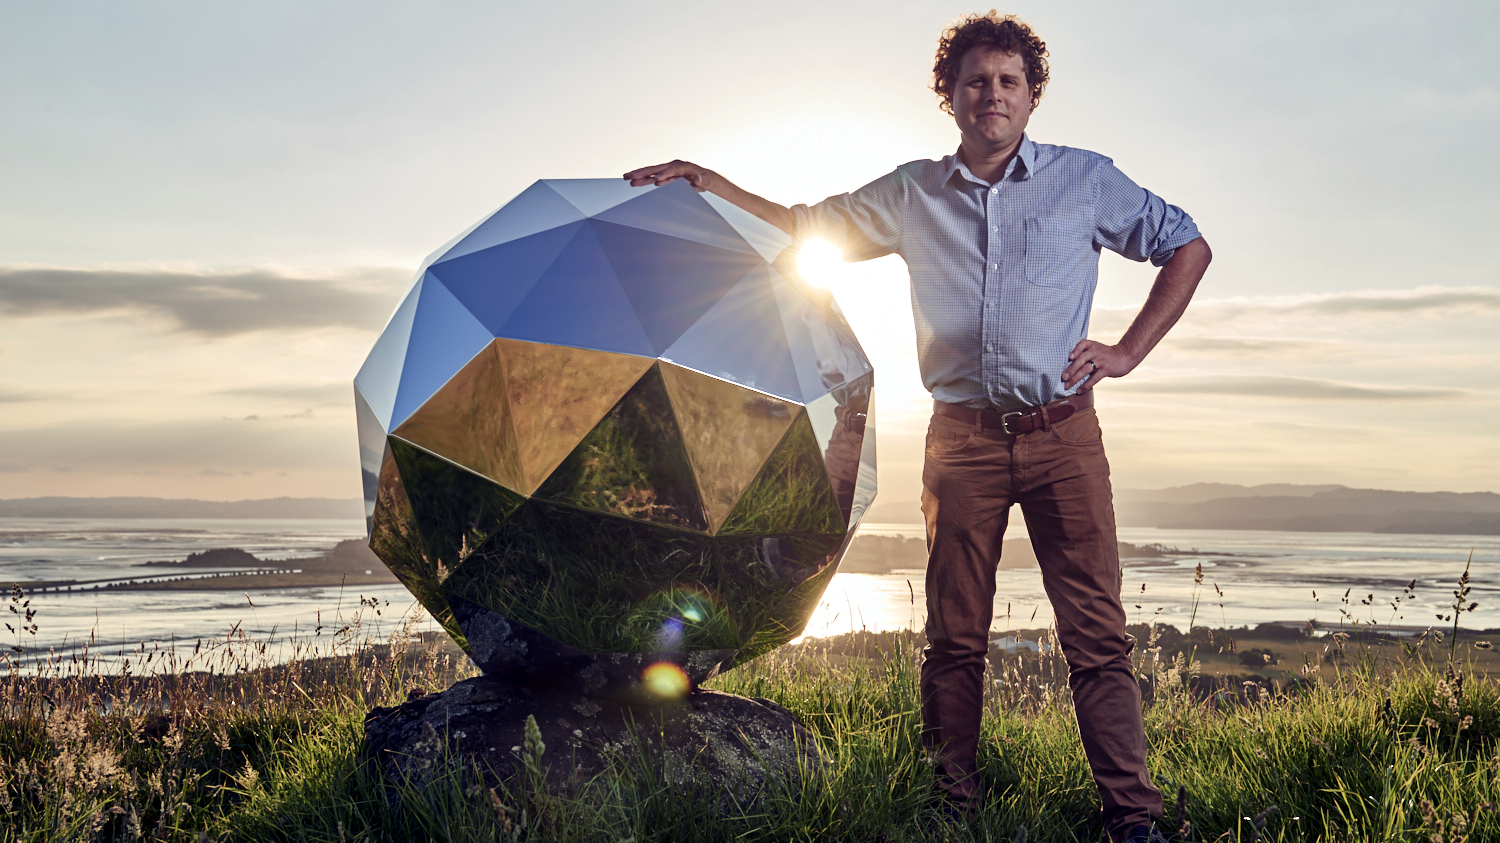 Rocket Lab CEO Peter Beck with the Humanity Star, a satellite designed to be visible from orbit.